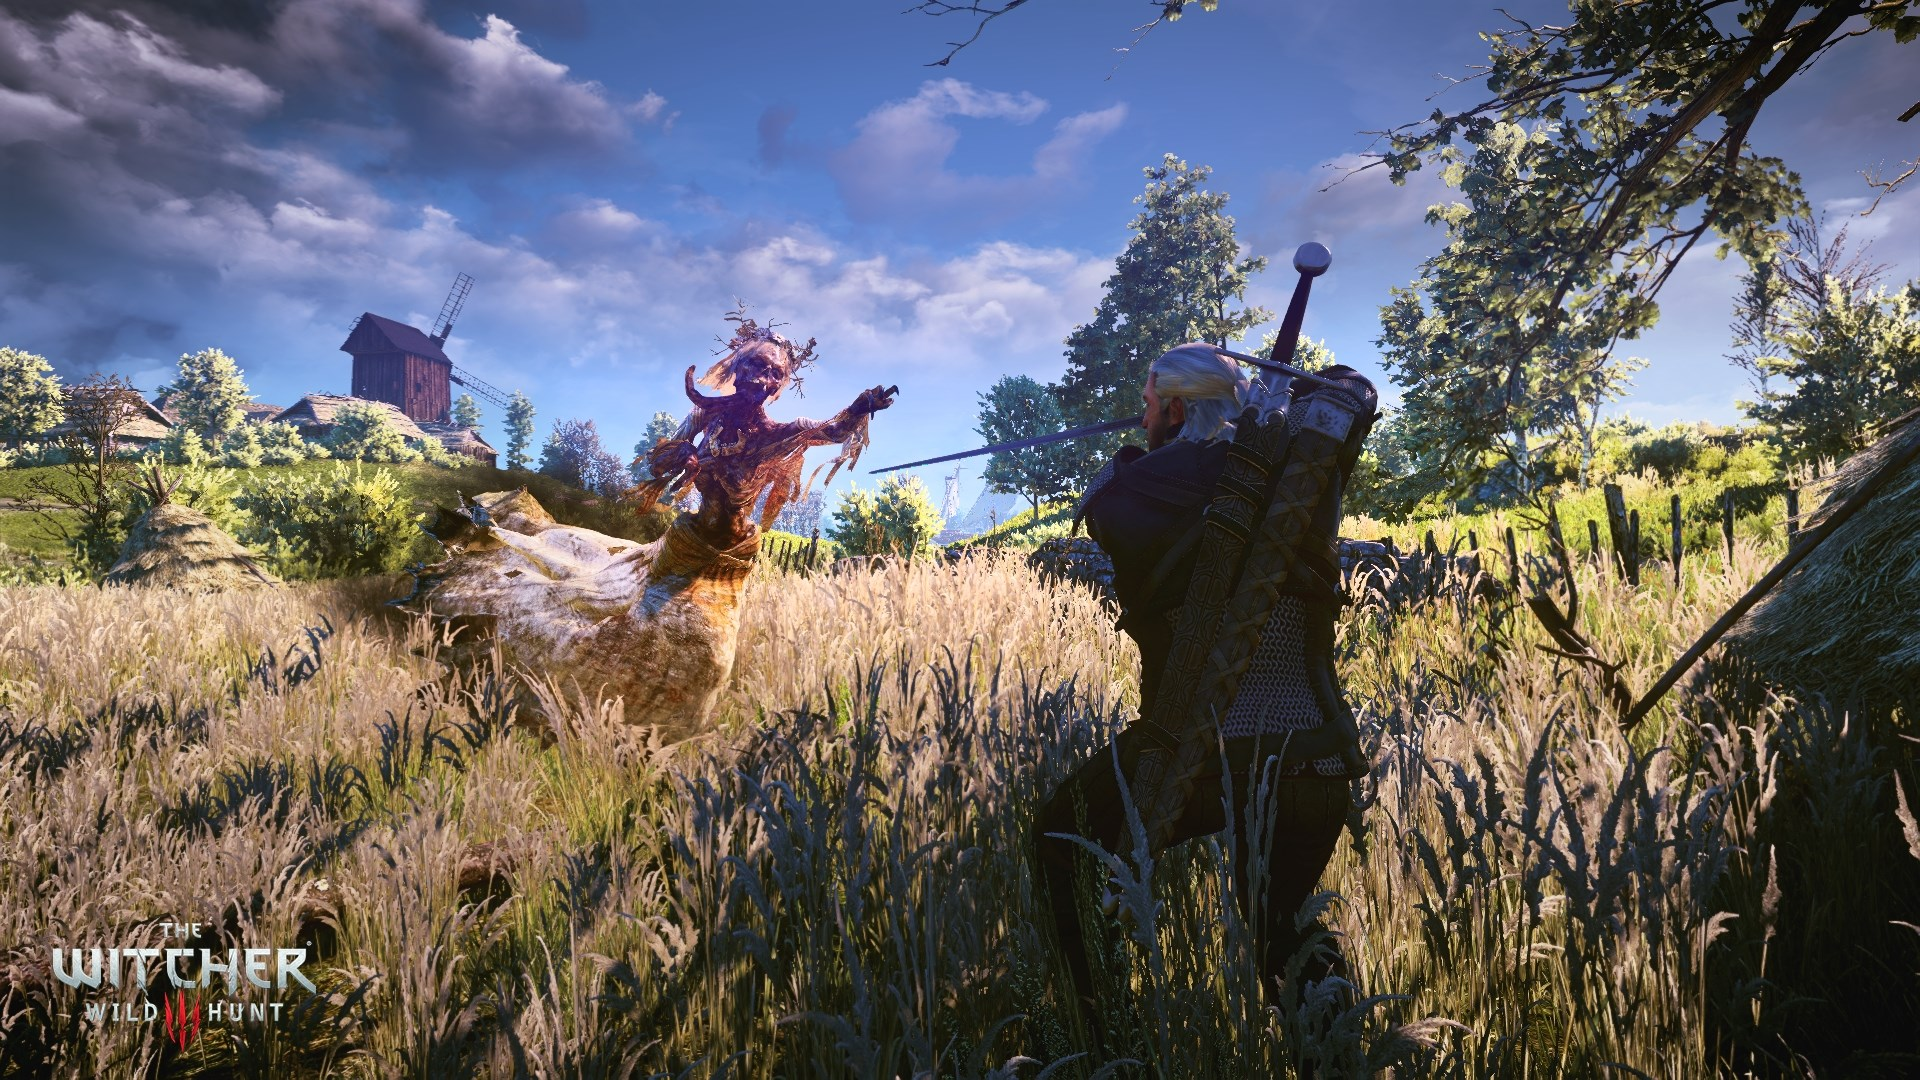 Veamos 6 impresionantes minutos de The Witcher 3: Wild Hunt [Instant GOTY]